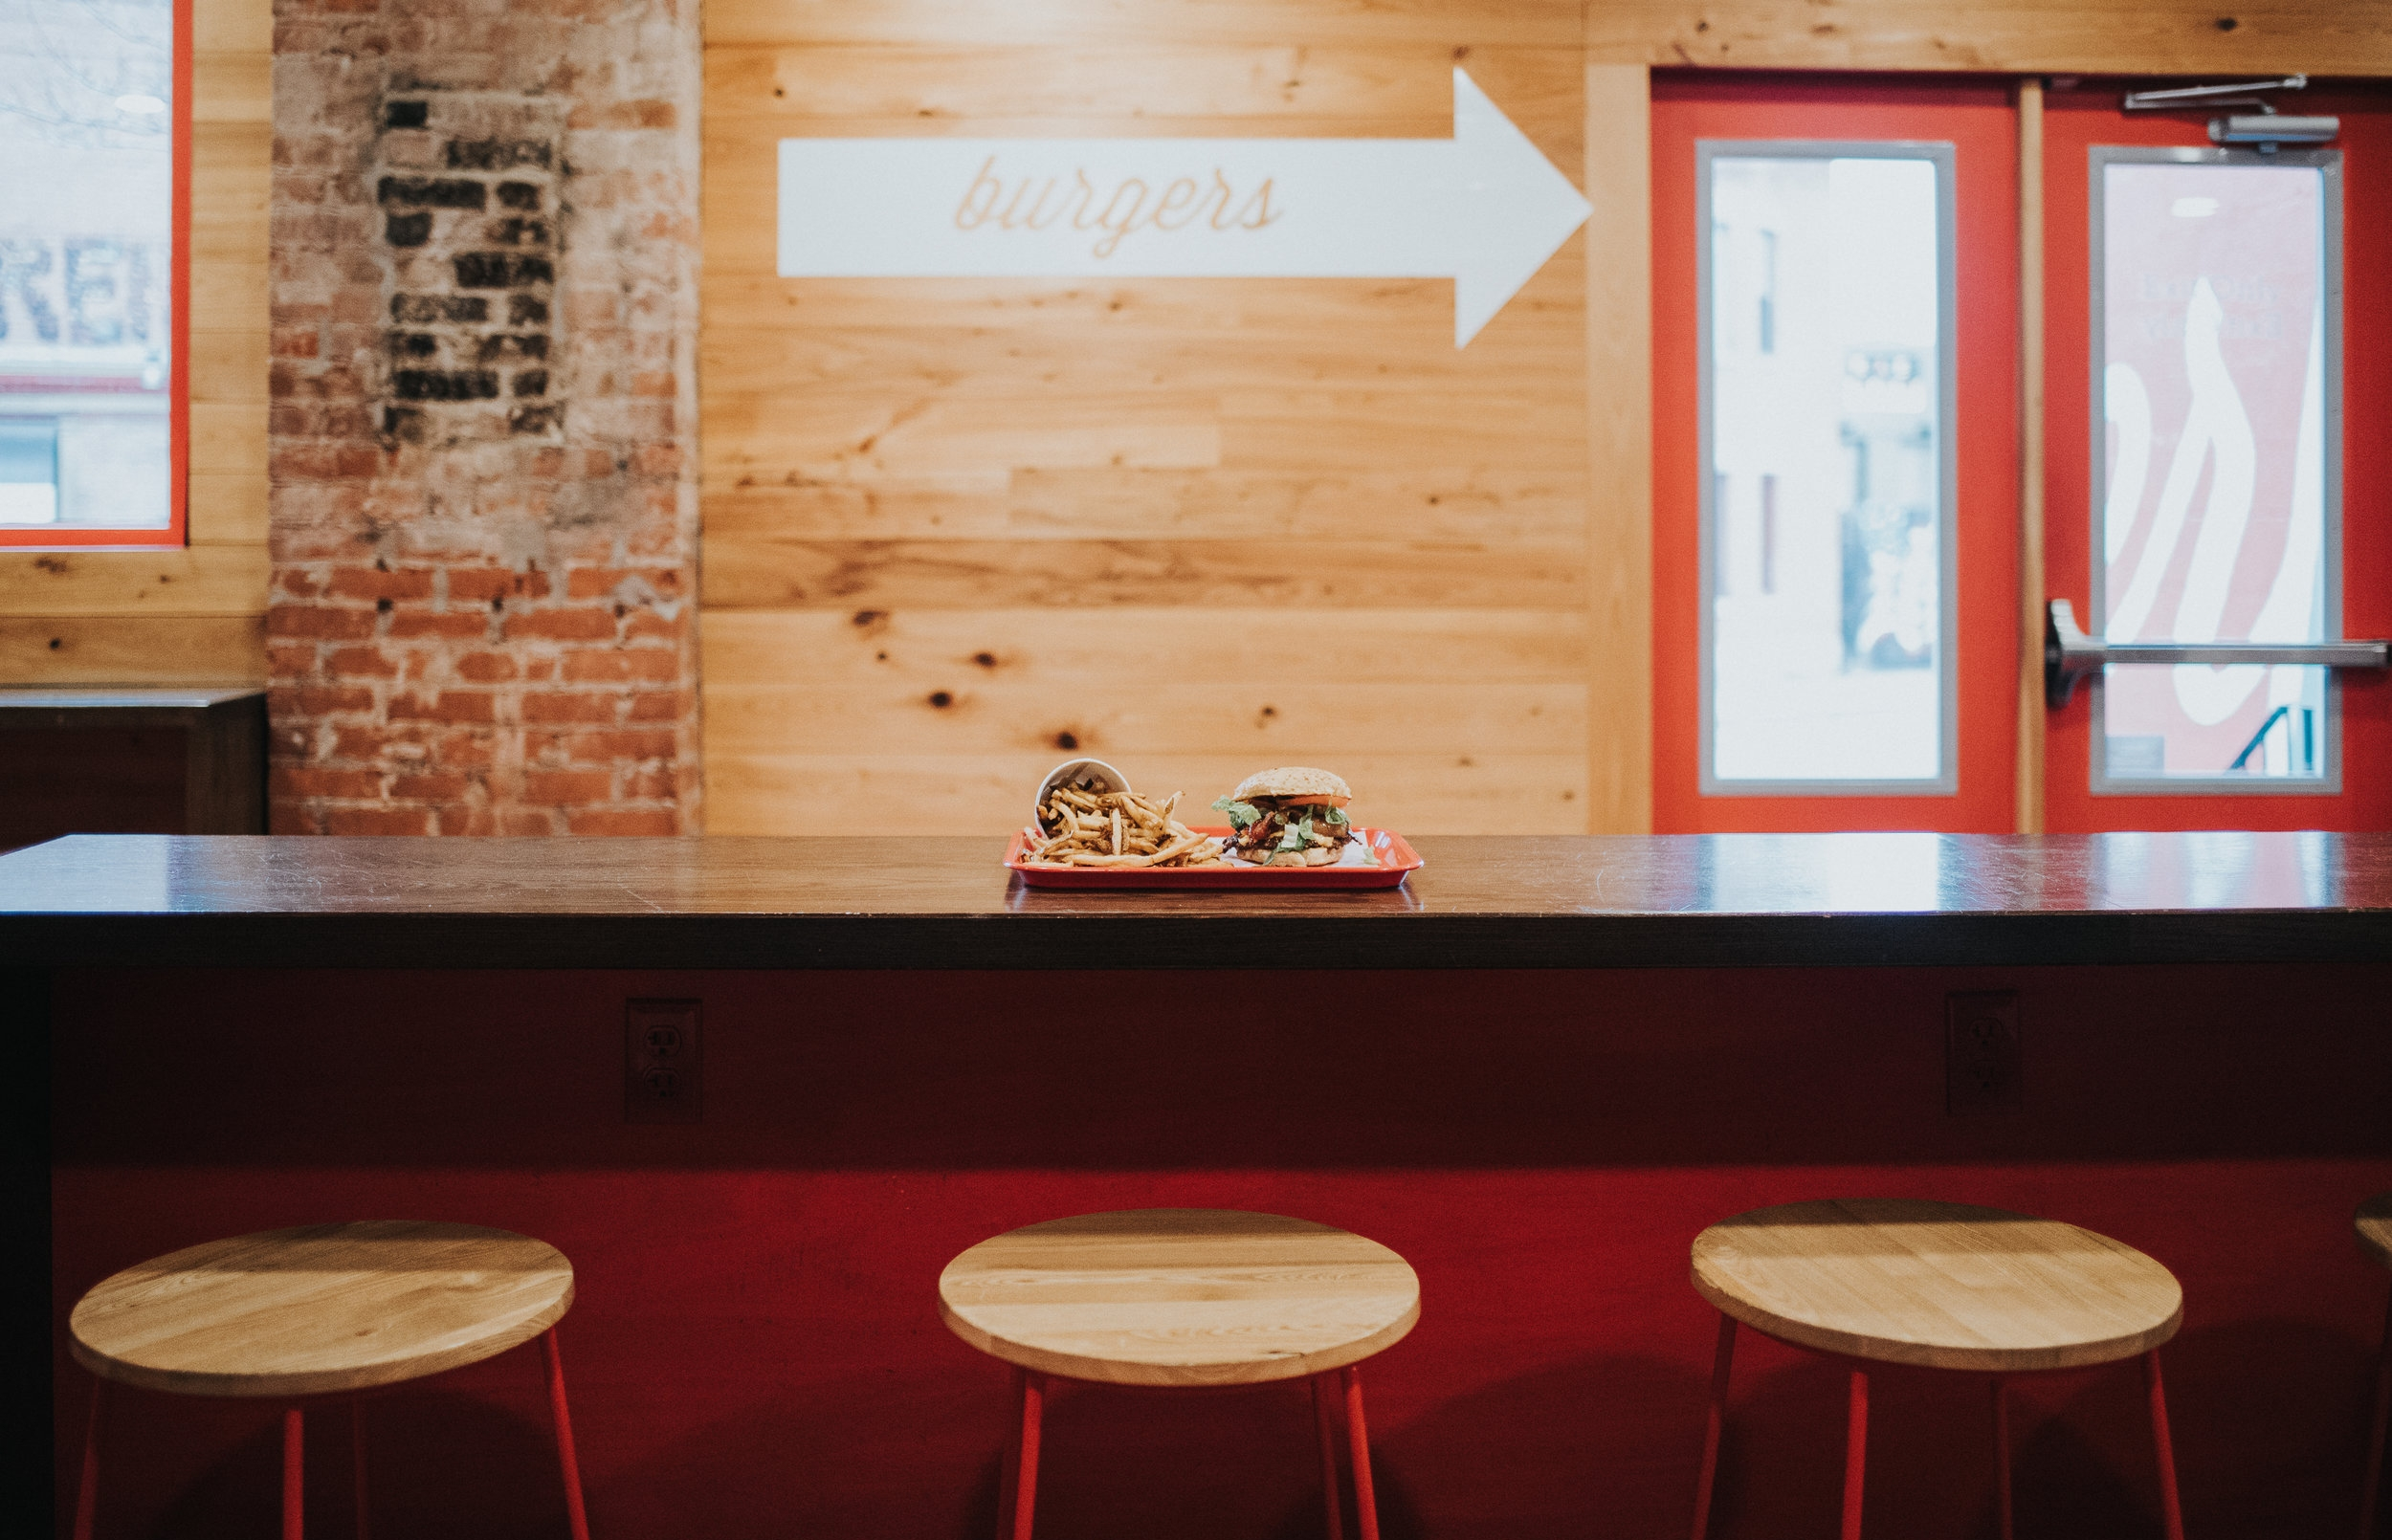 - Counter service and a casual atmosphere make ordering a breeze. Play a game or grab a drink at the bar while you wait, a buzzer will alert you when your food is ready.